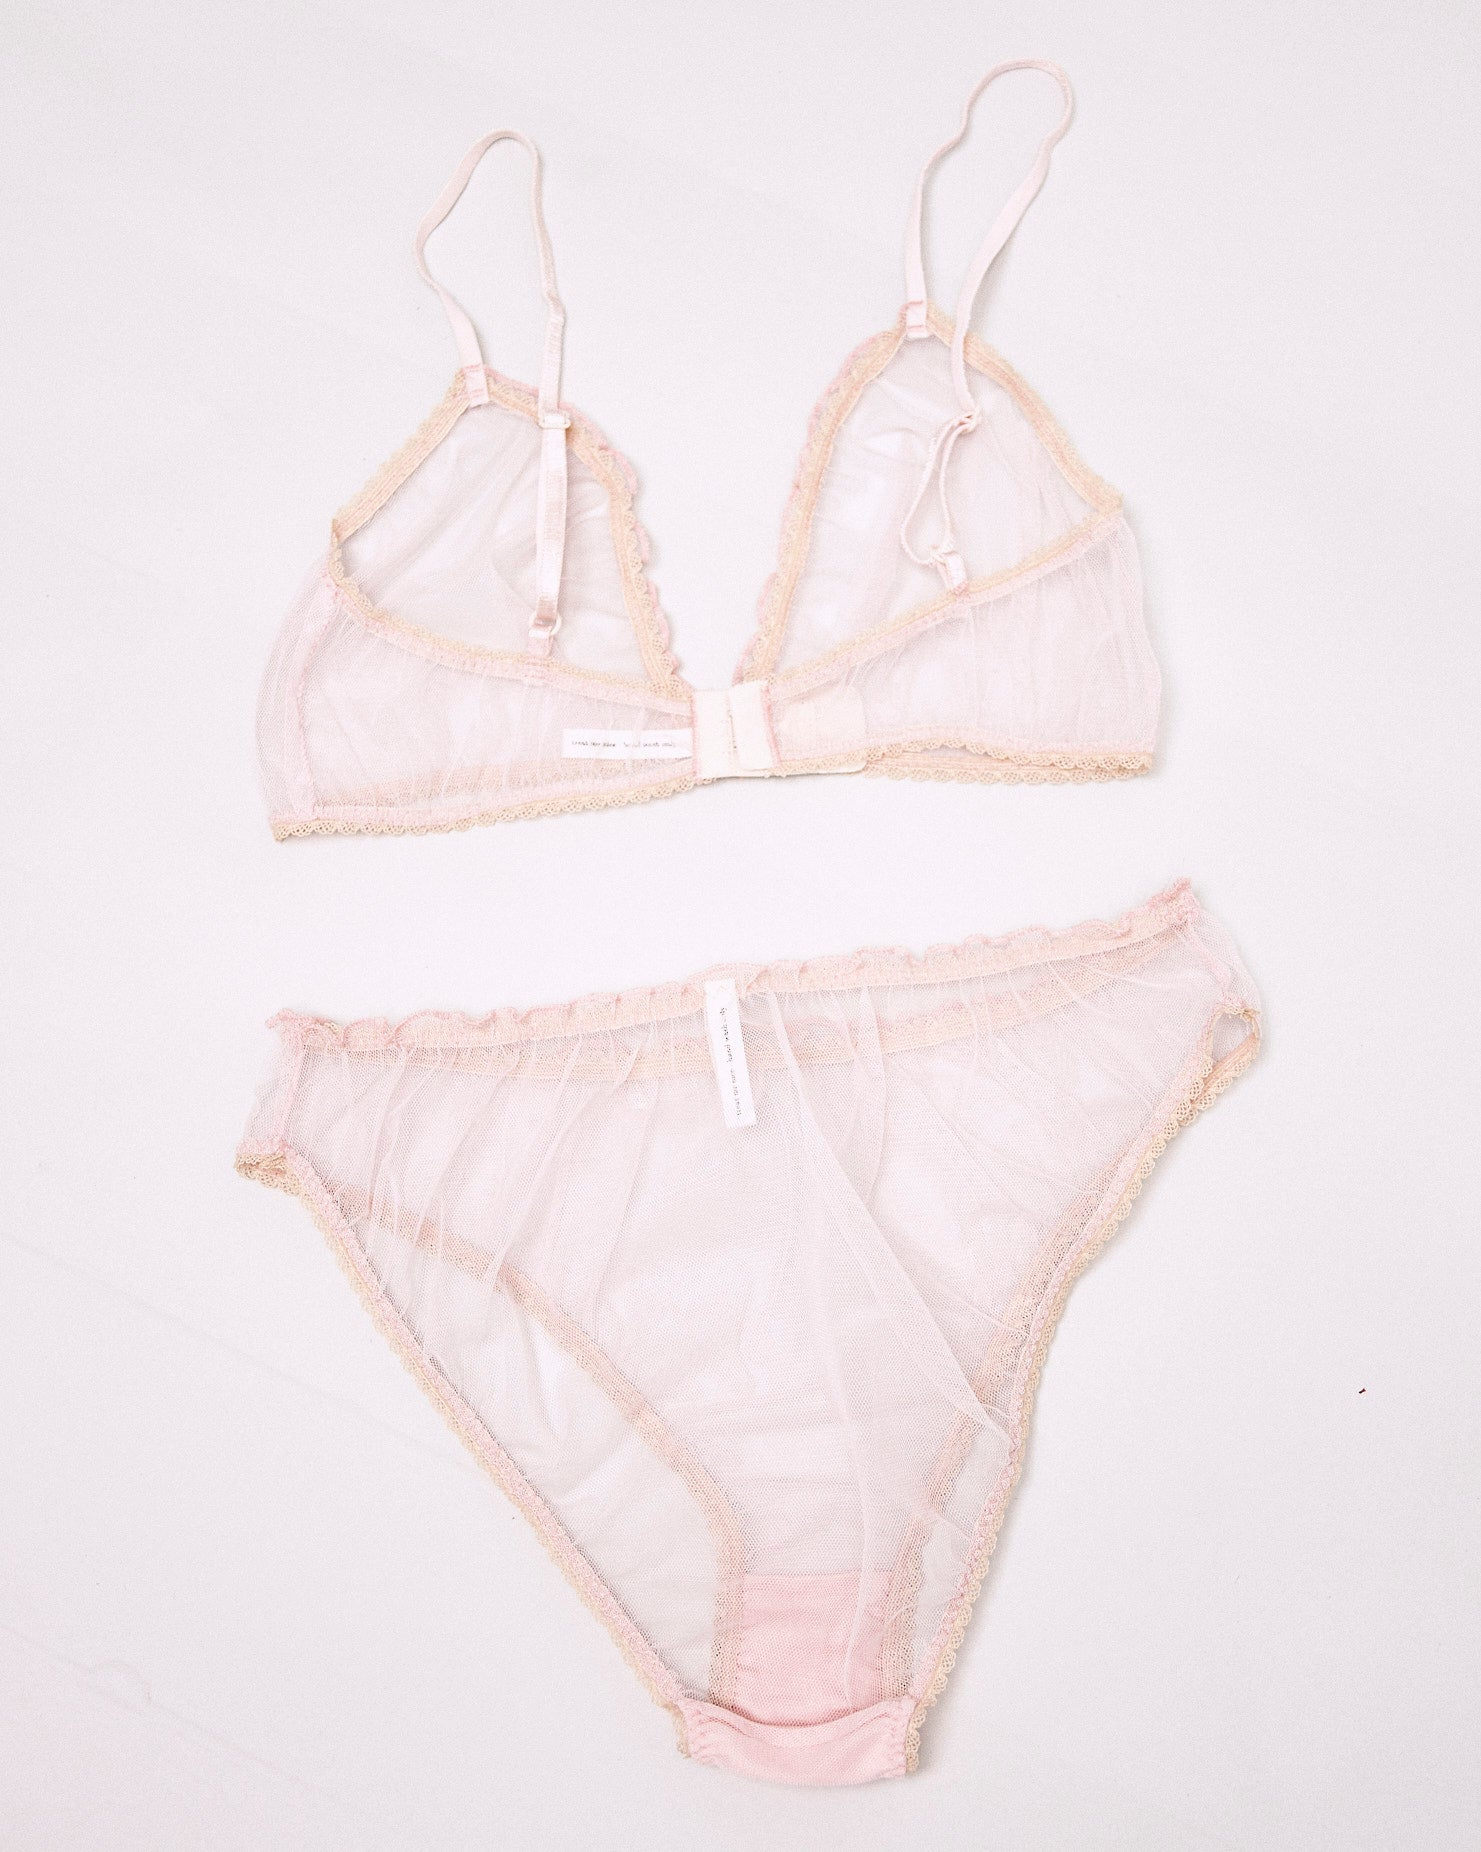 Vivi sheer lingerie set